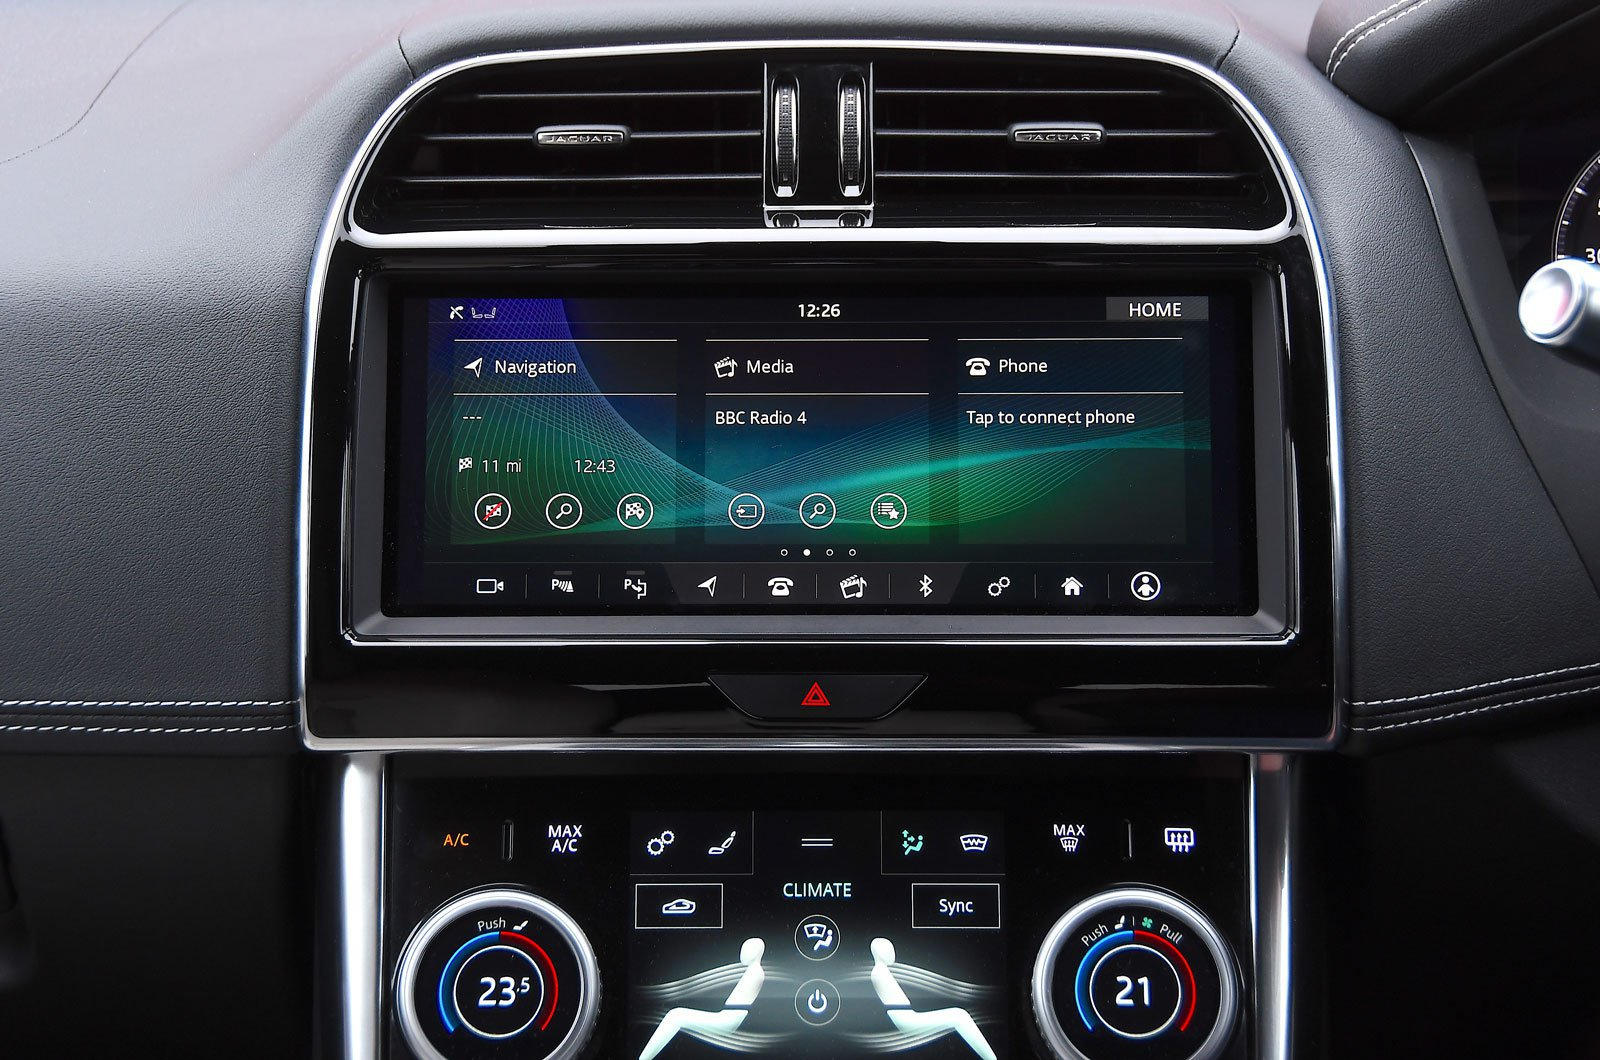 Jaguar infotainment screen